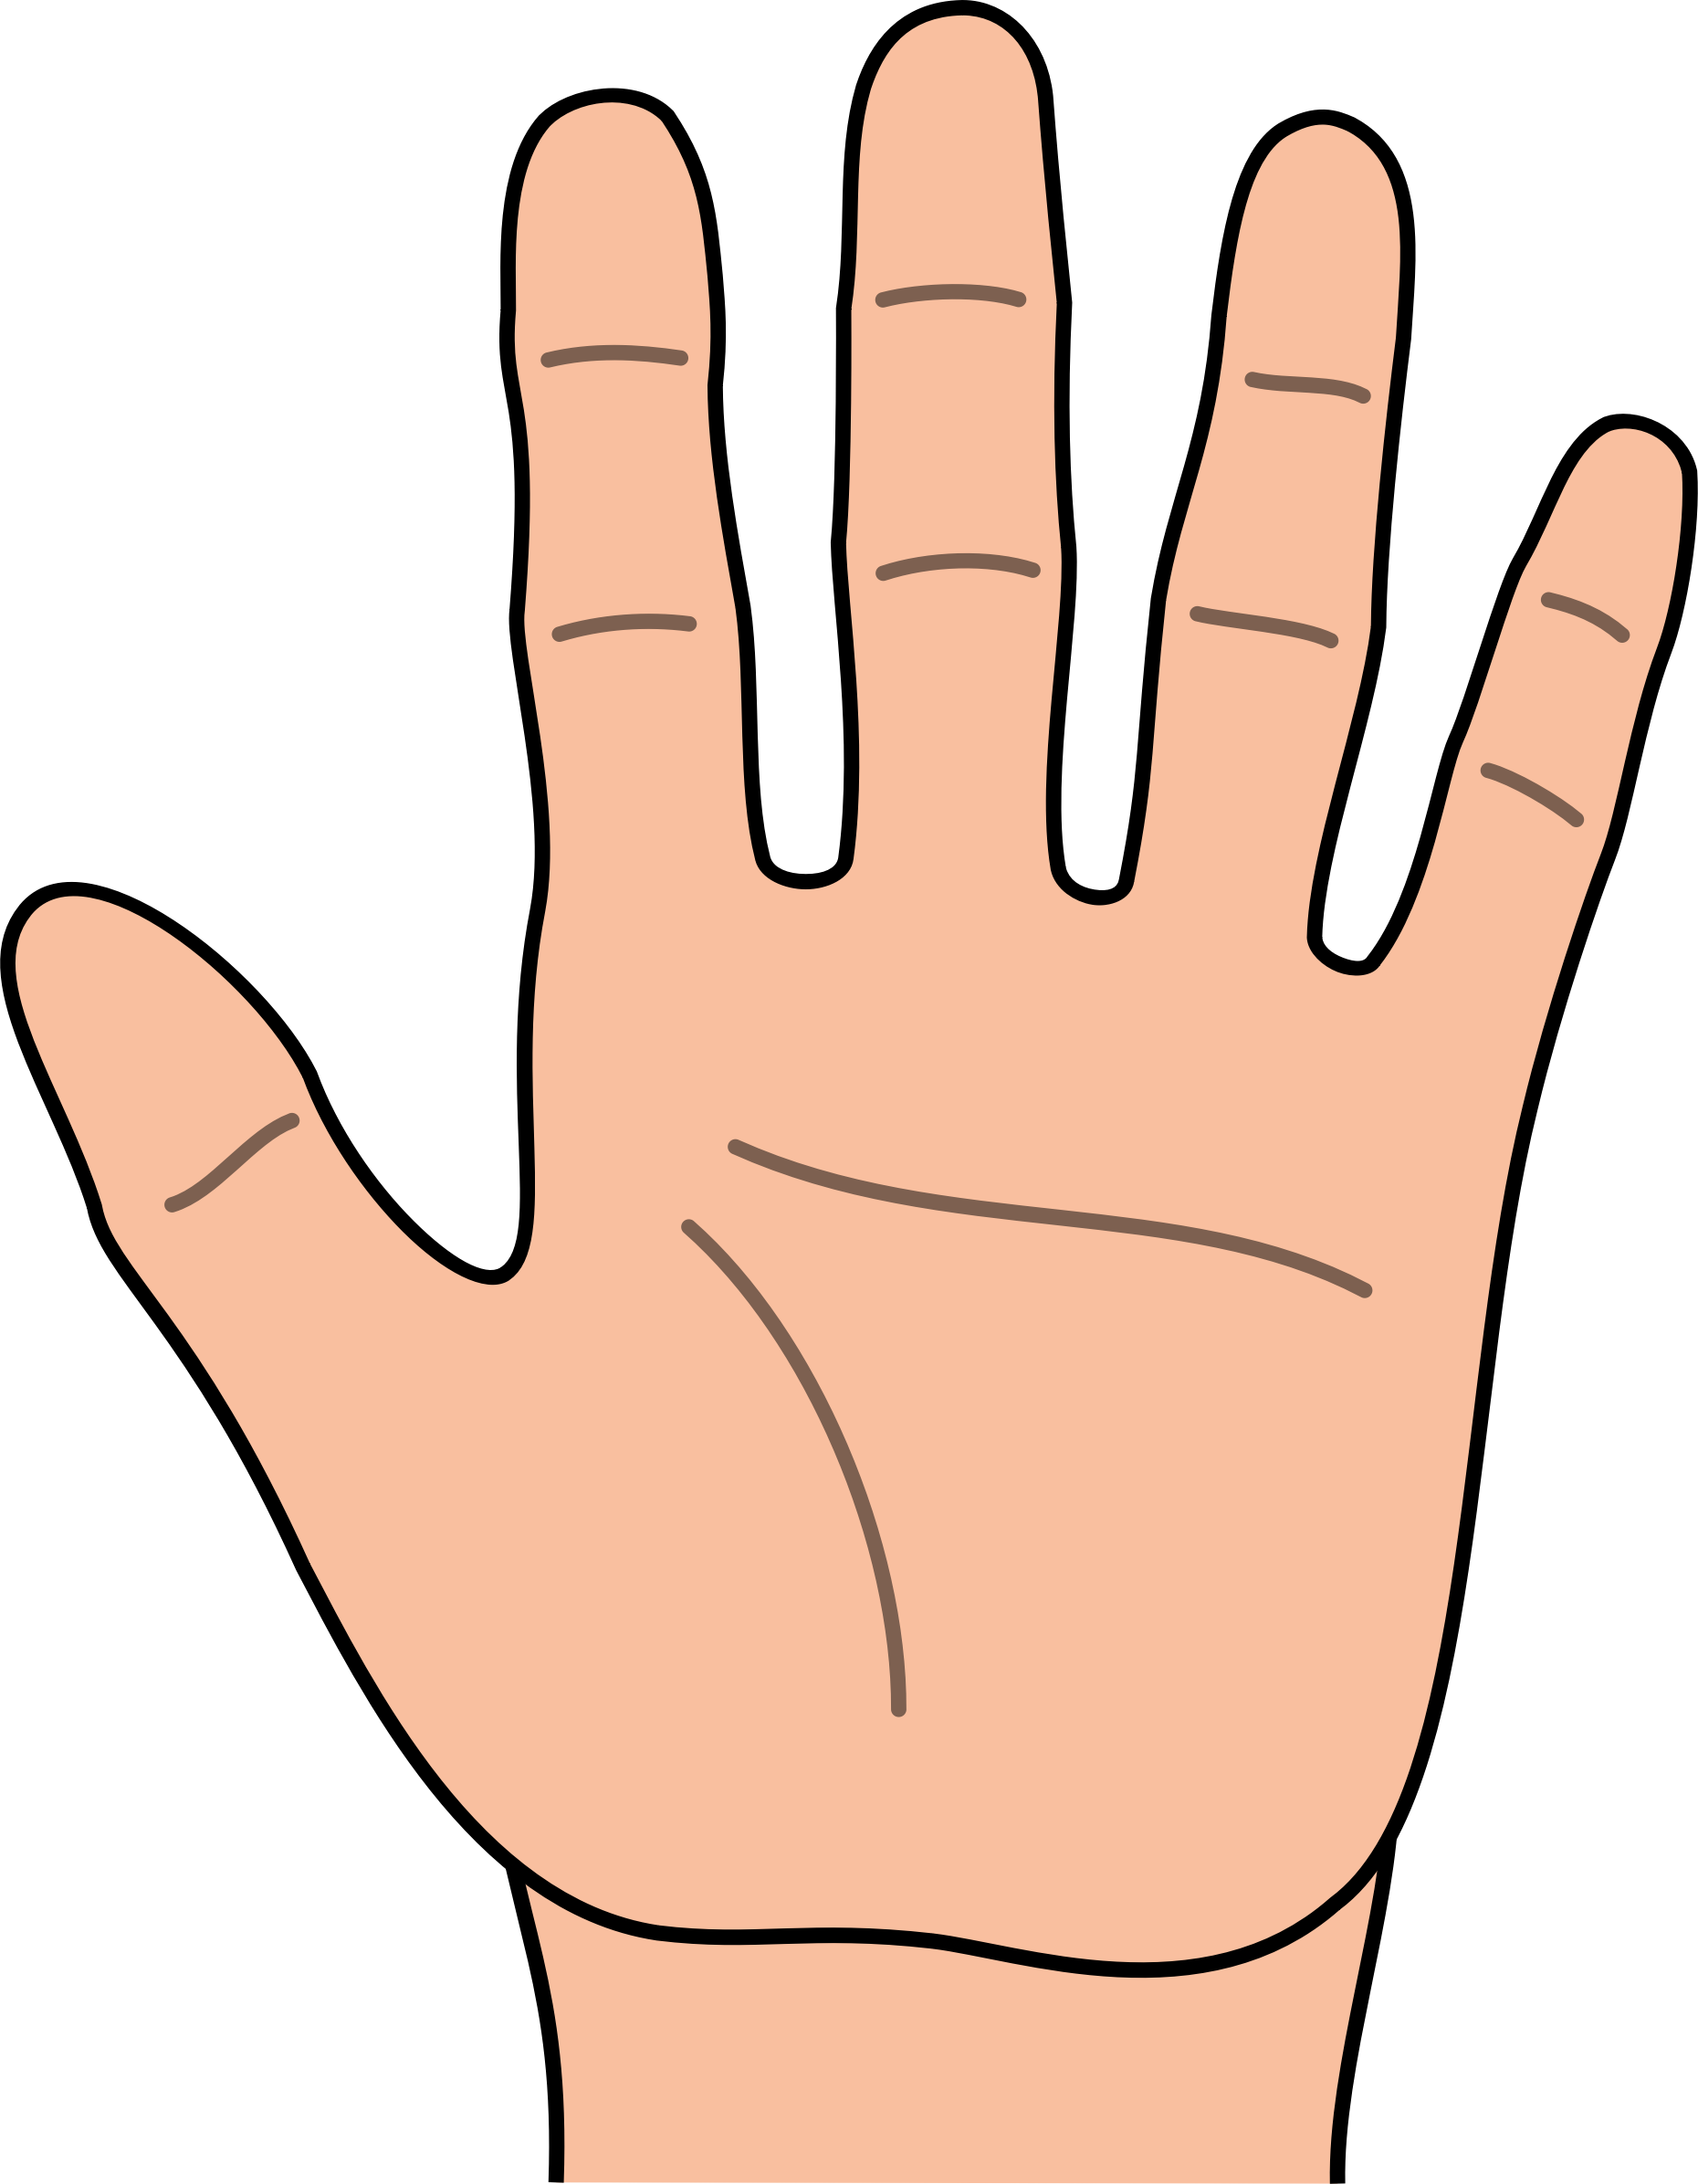 Hands hand clip art free clipart images